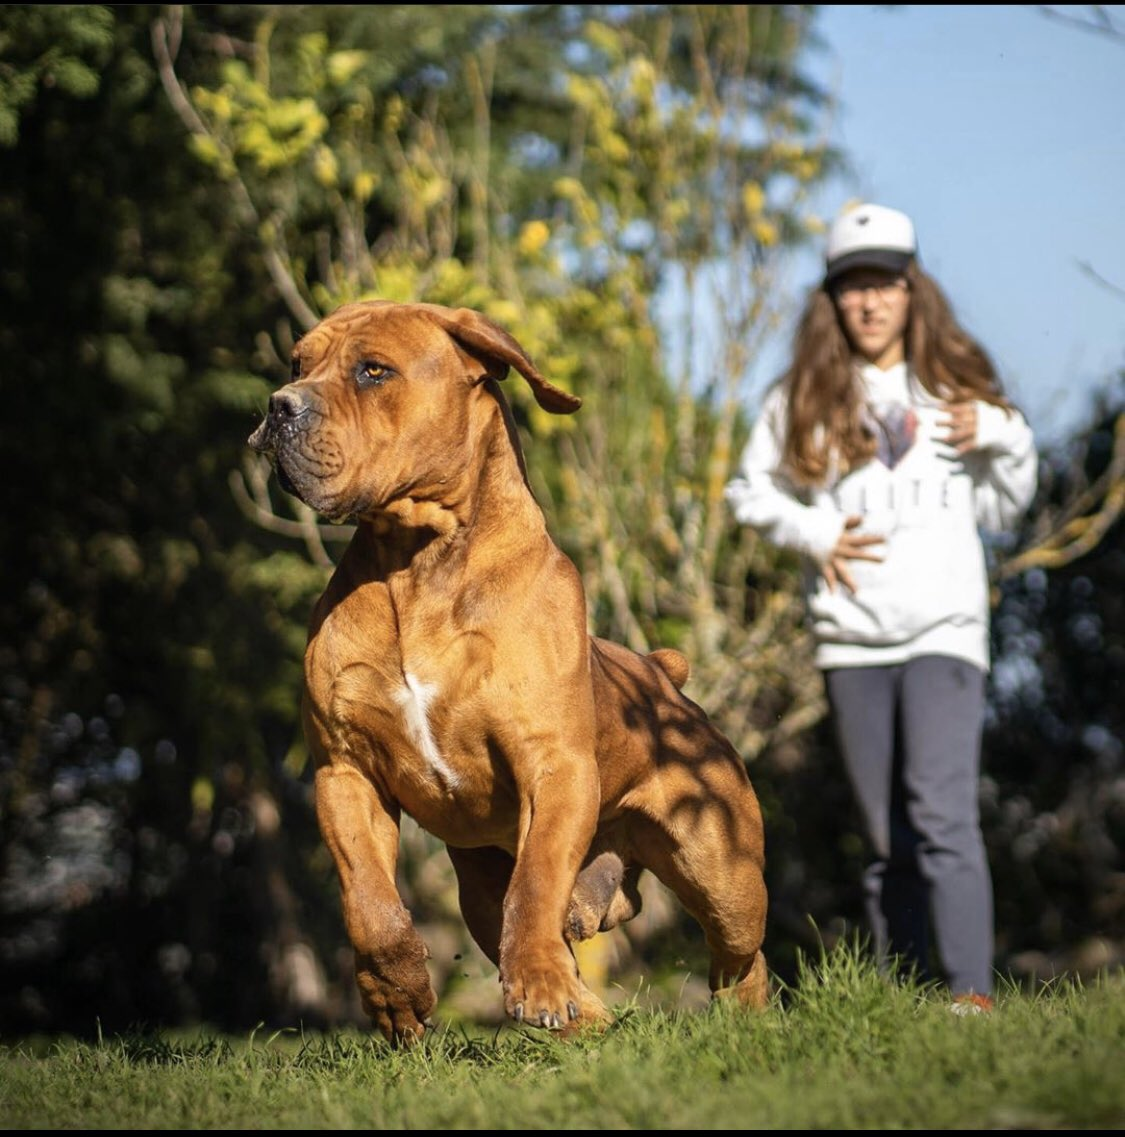 The Boerboel [ˈbuːrbul], is a large, Molosser-type breed from South Africa [2]and are bred for the purpose of guarding the homestead. These dogs were bred as working farm dogs and are one of the most powerful dog breeds in the world and have a bite force of up to 800 psi.[3] Male pic.twitter.com/ivlmzVRp0M